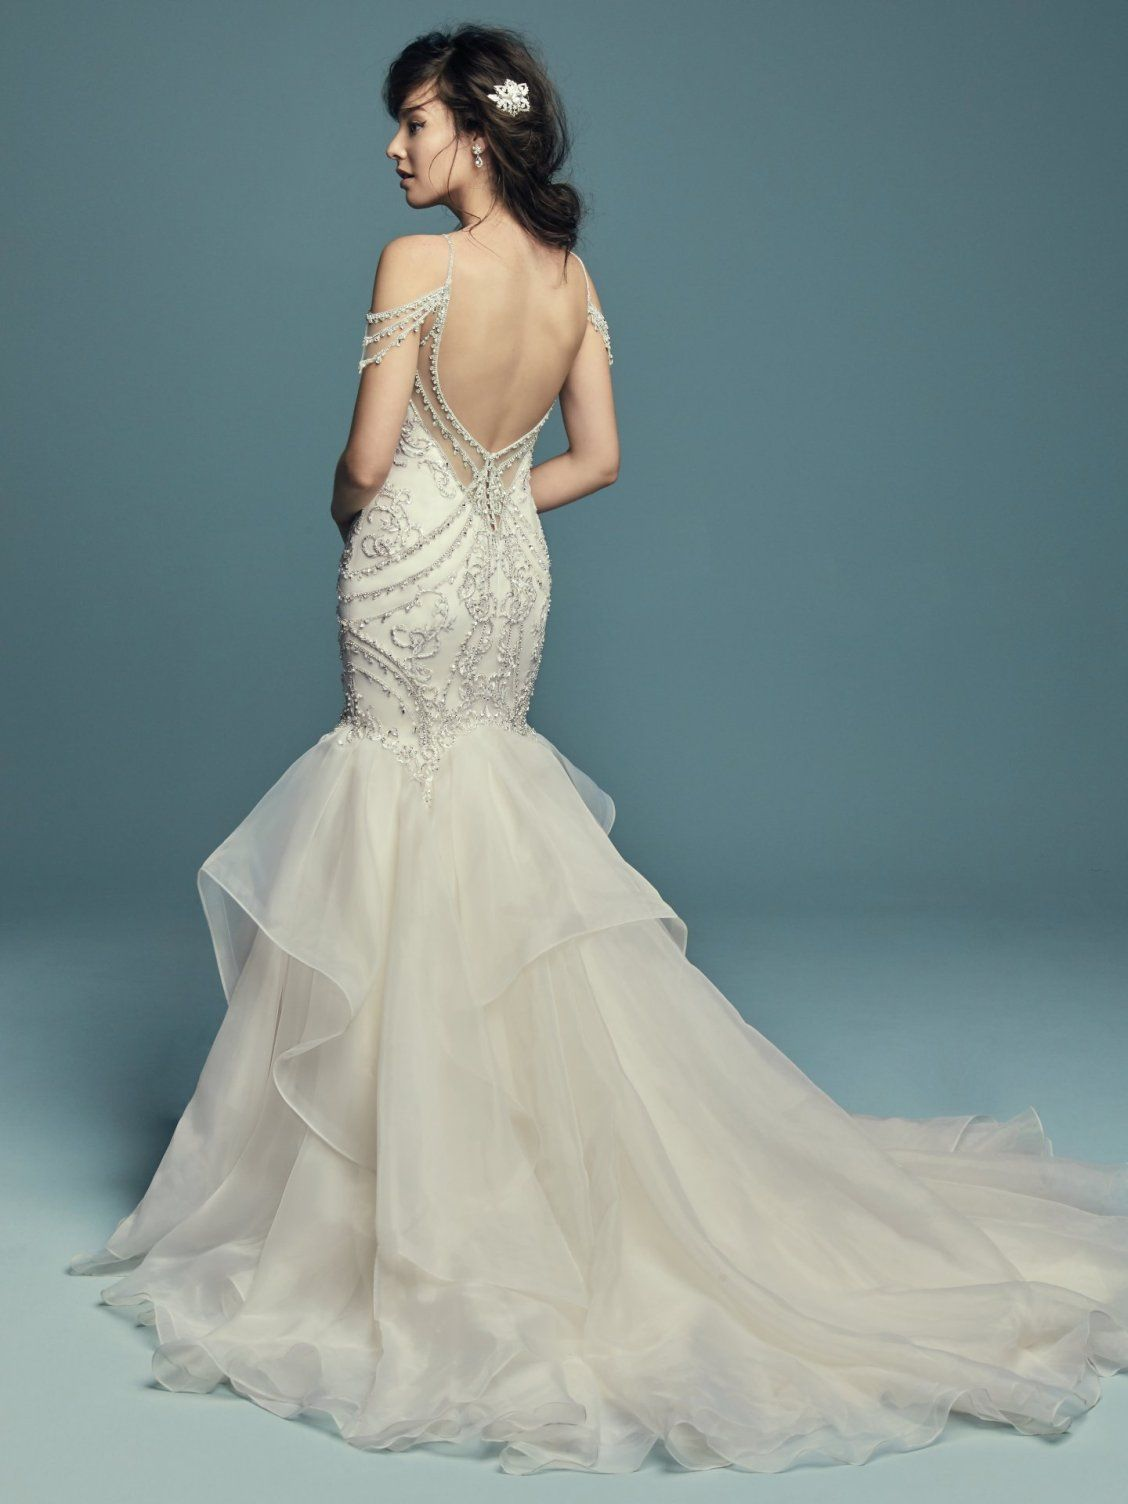 998c5ec8cfd BRINKLEY by Maggie Sottero Wedding Dresses in 2019